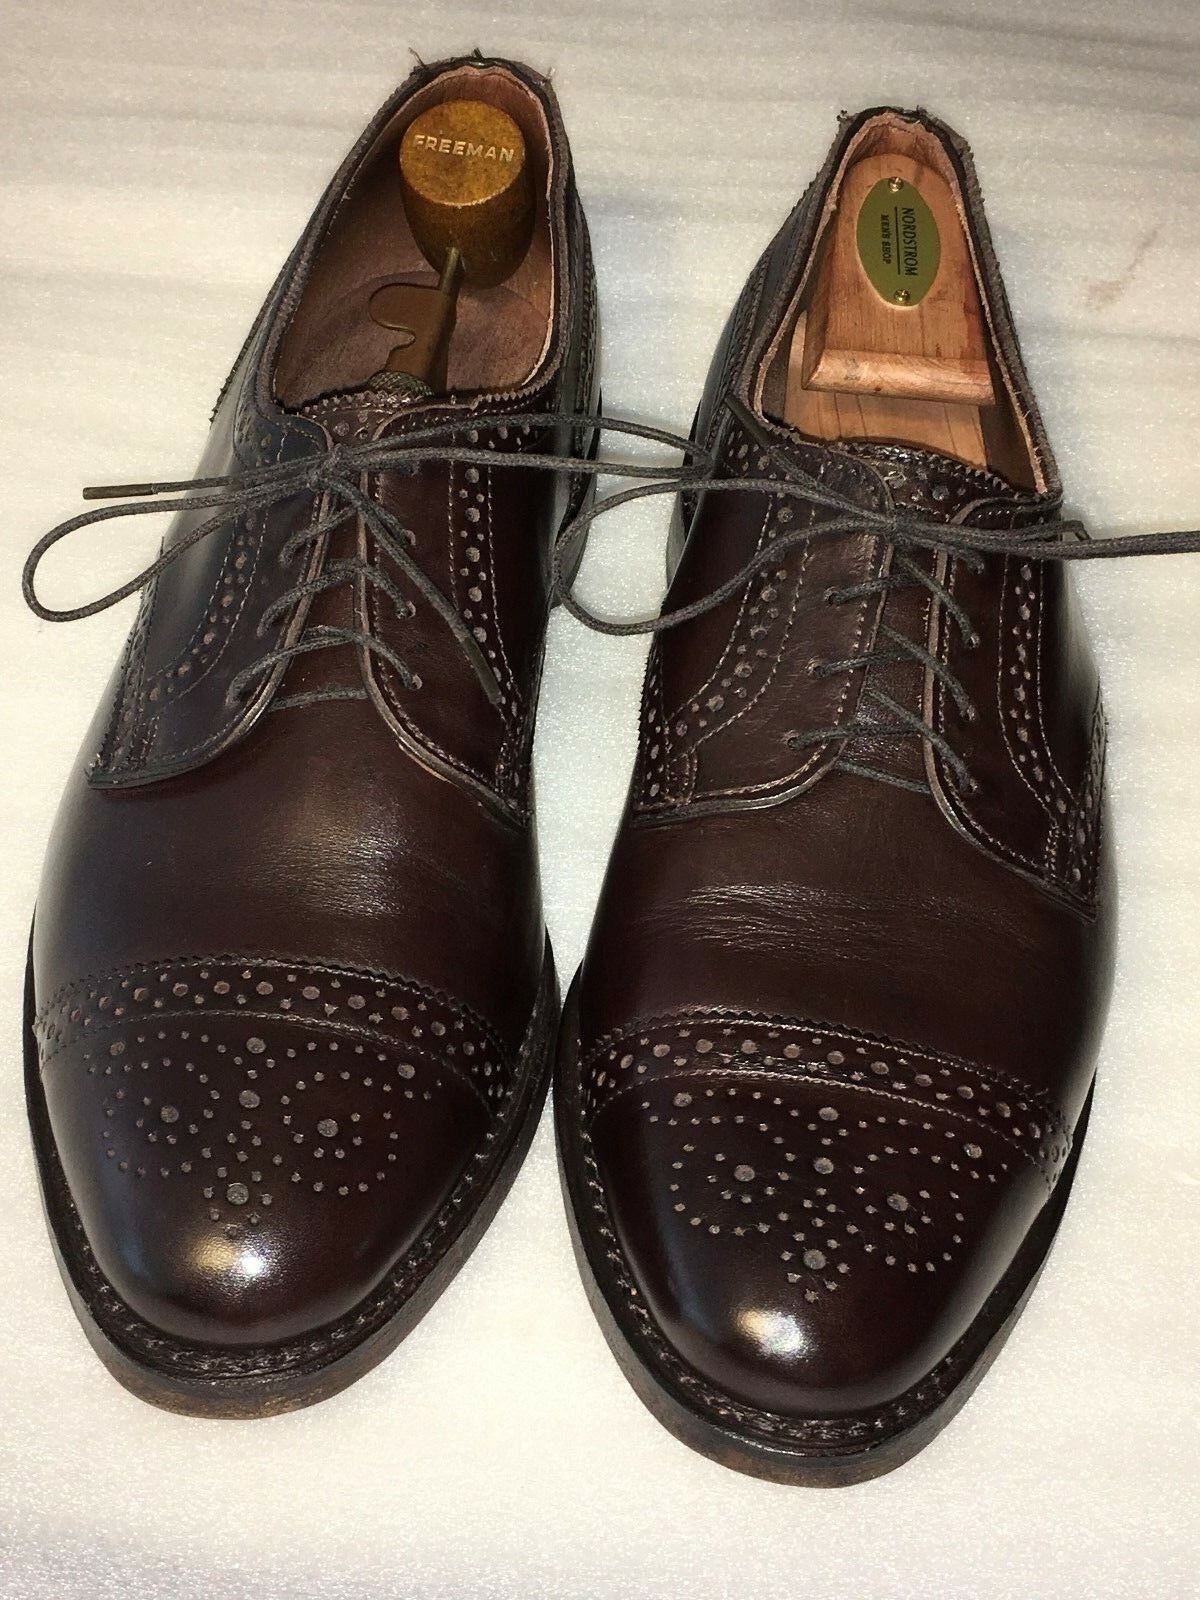 Allen Edmonds men's  6TH AVENUE  Oxfords Sz 9.D Brown (087) Retail  385